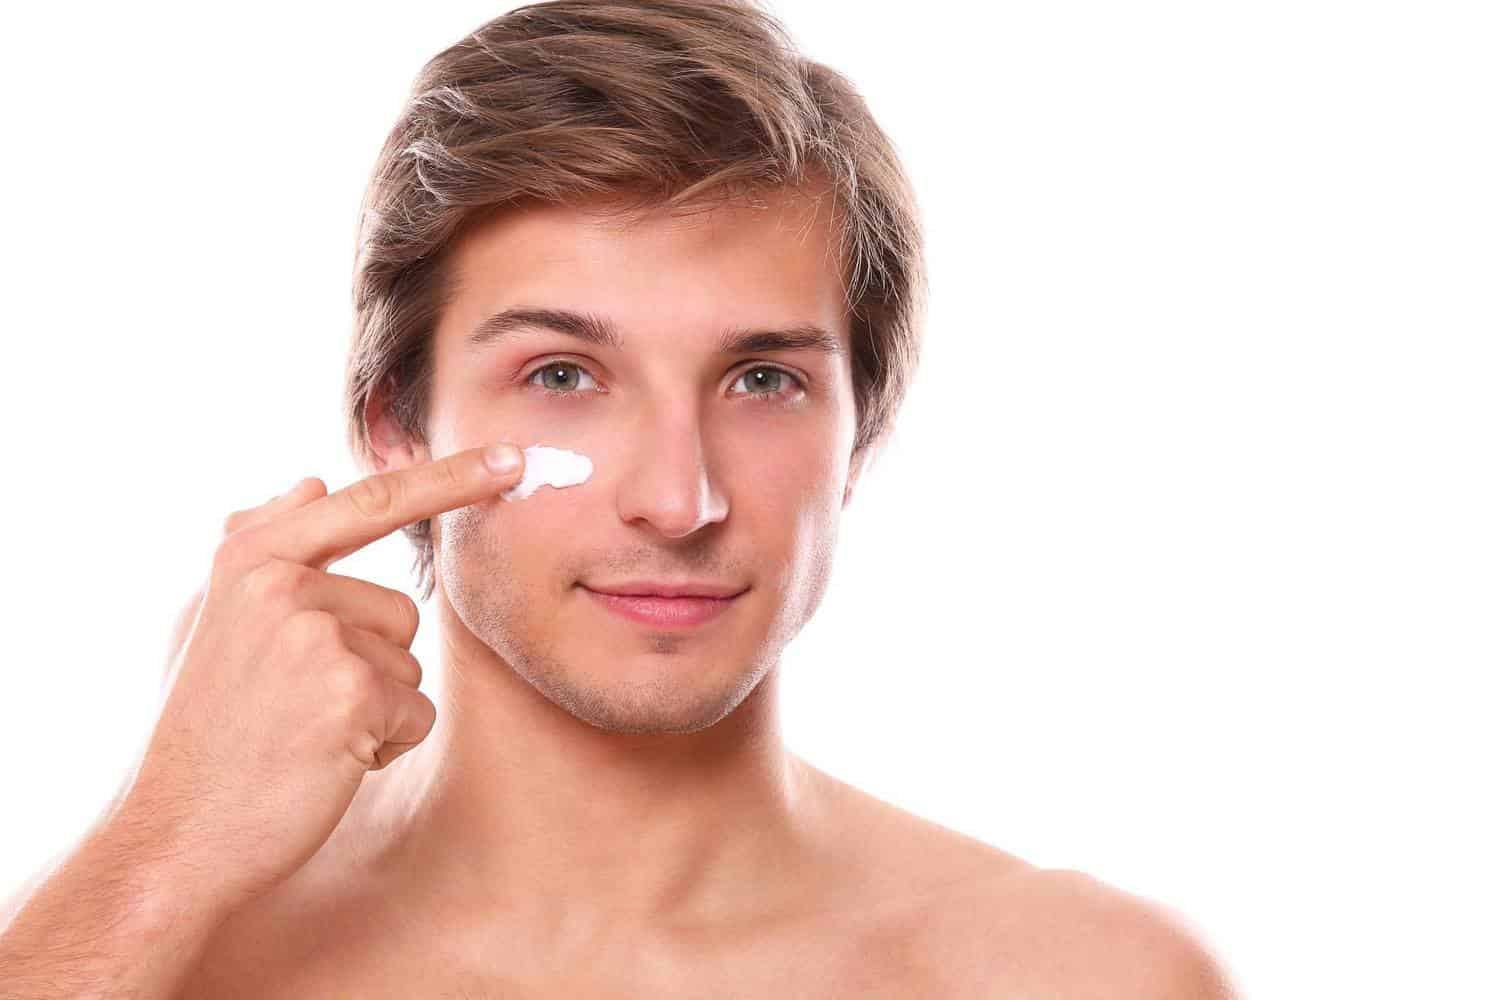 A man putting a line of toothpaste on his face.